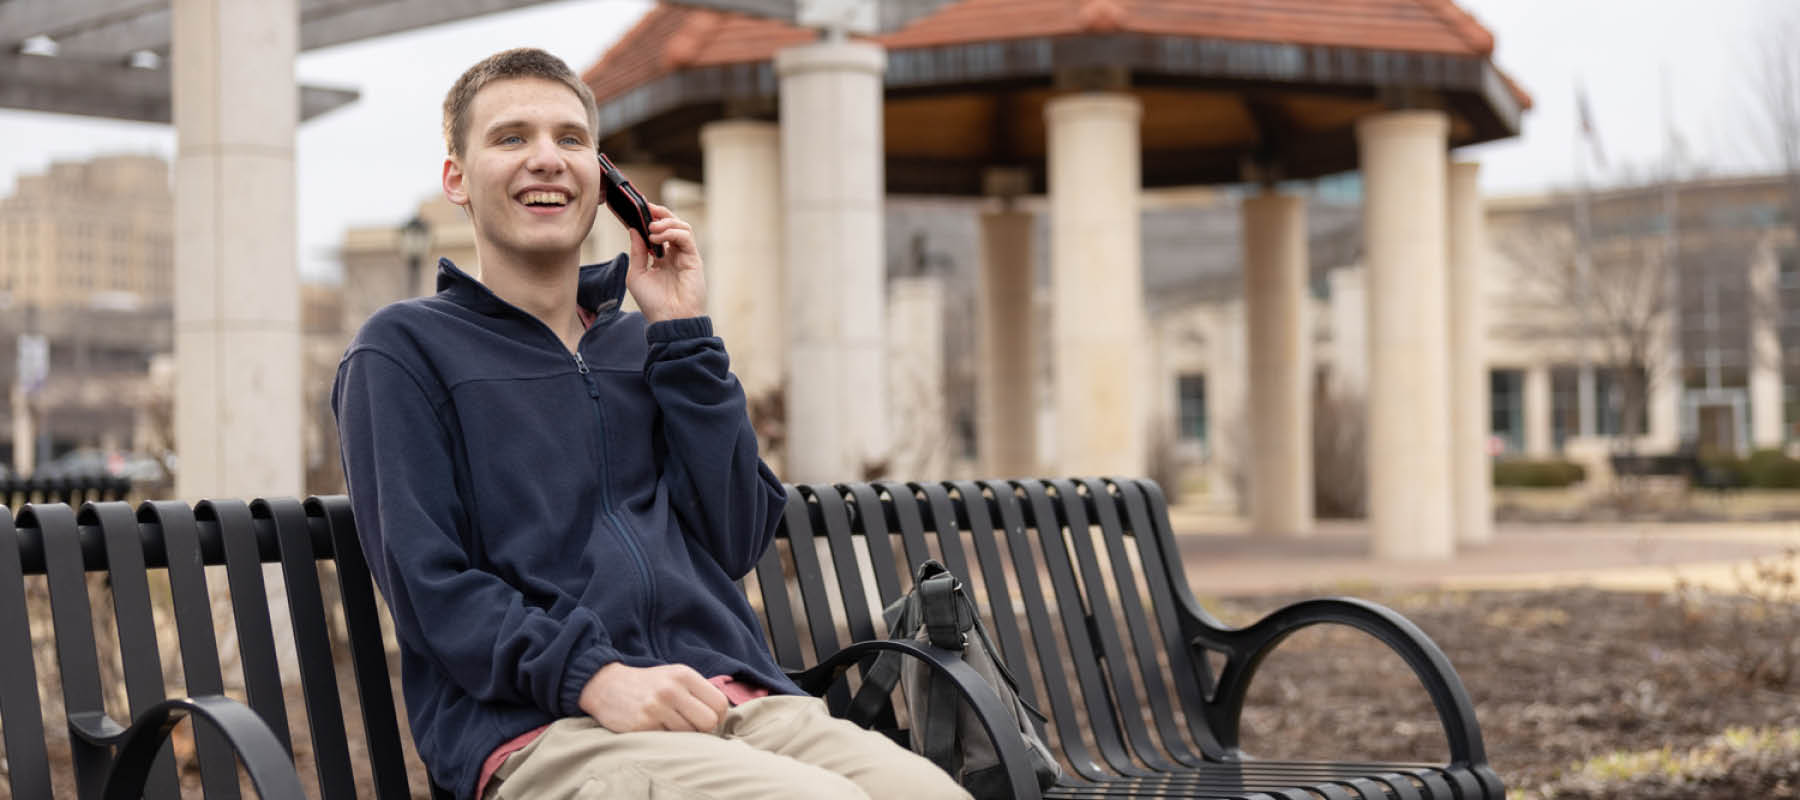 Young man with Autism sitting on bench talking on phone and smiling